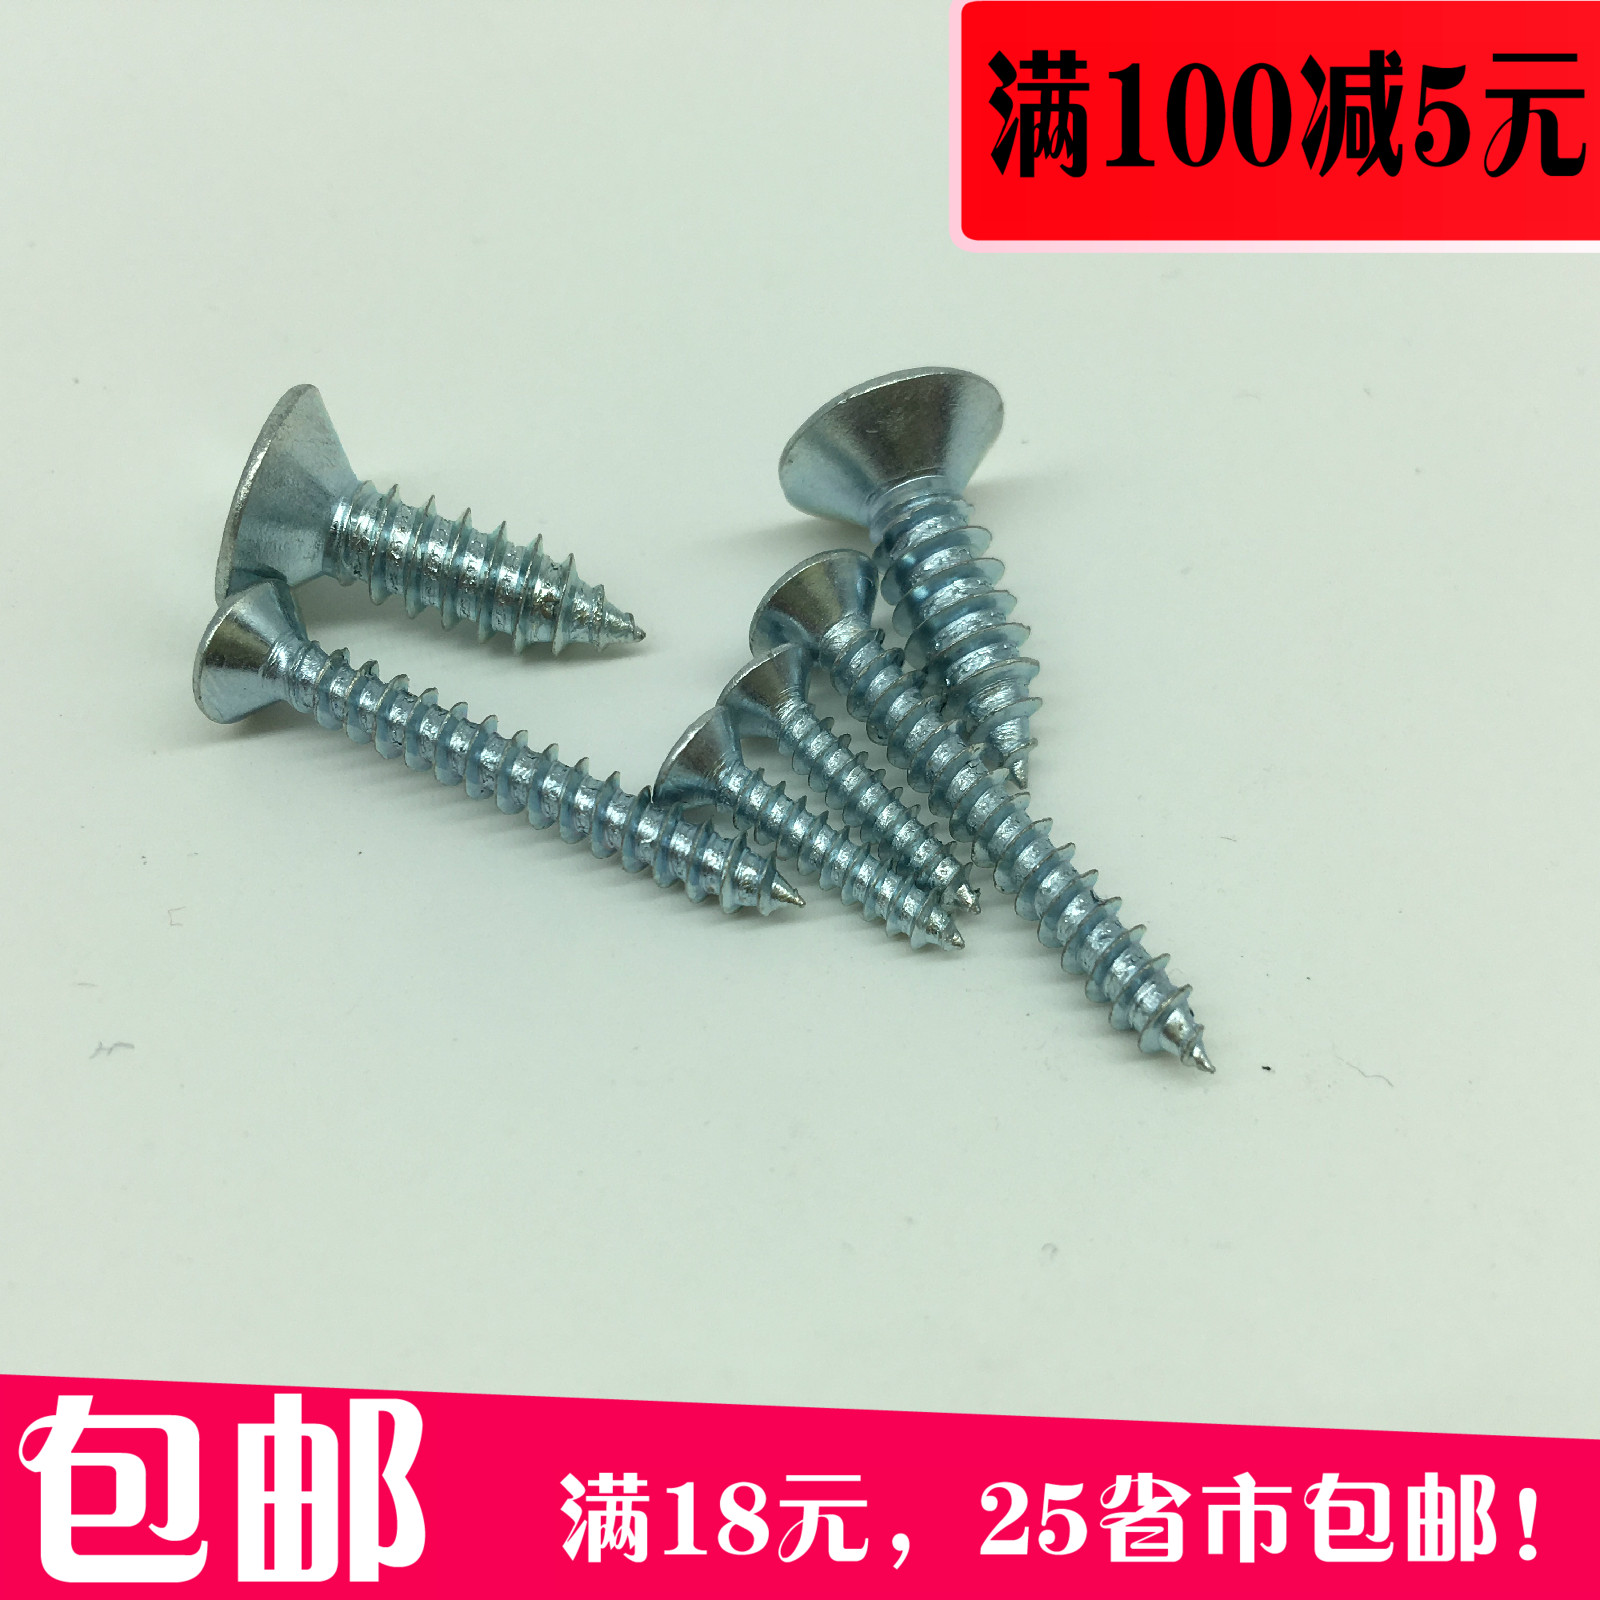 Shanghai production of high strength flat head self tapping screws countersunk head phillips head self tapping screws m5 m6 series